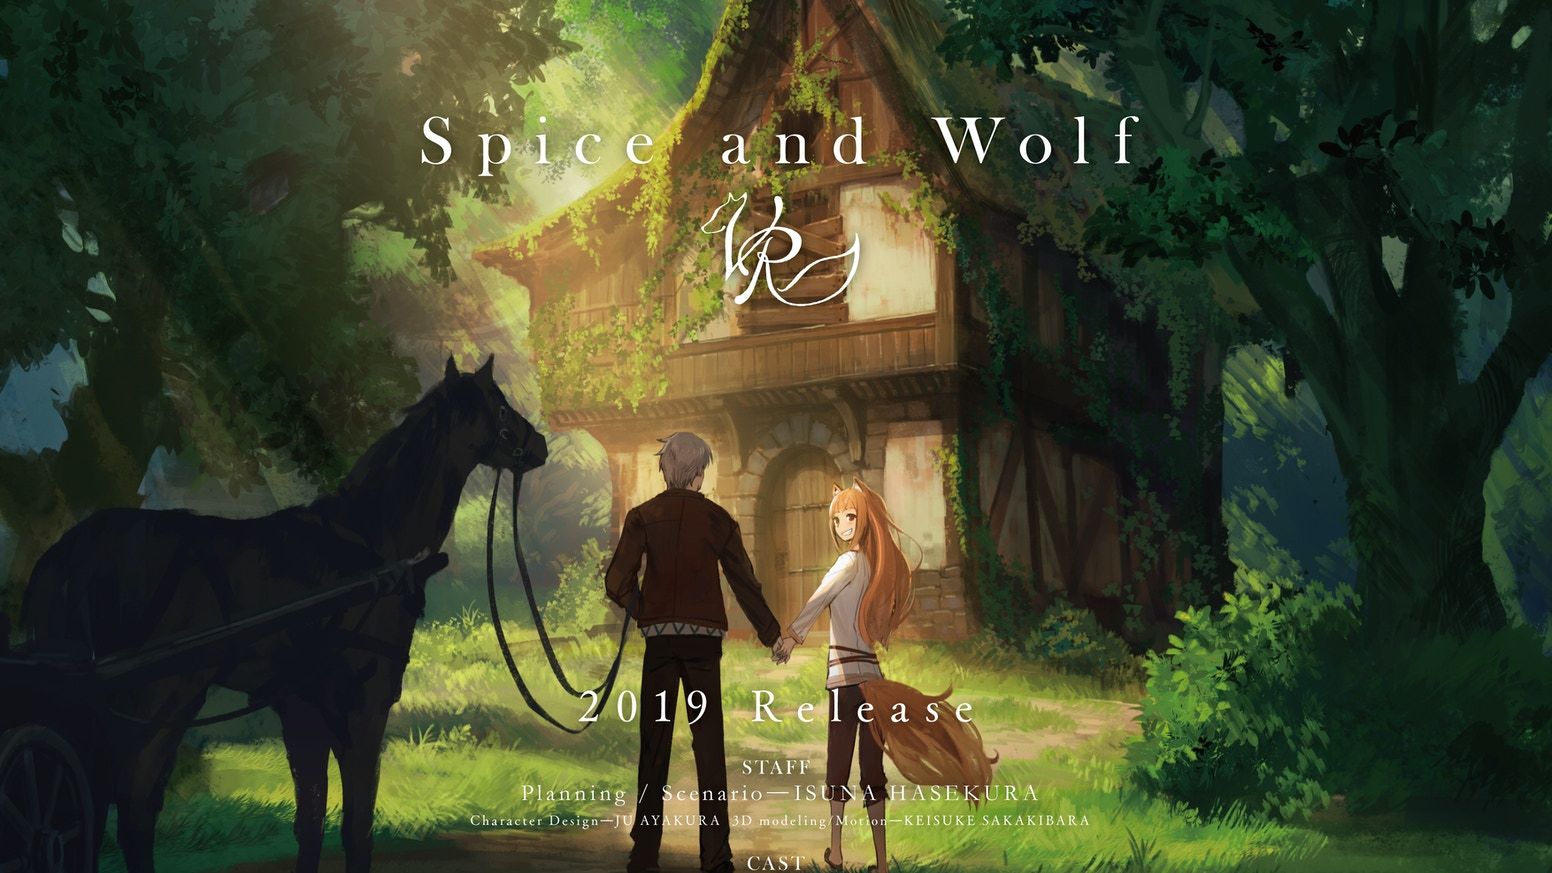 The Vr Animation Spice And Wolf Vr Production Project By